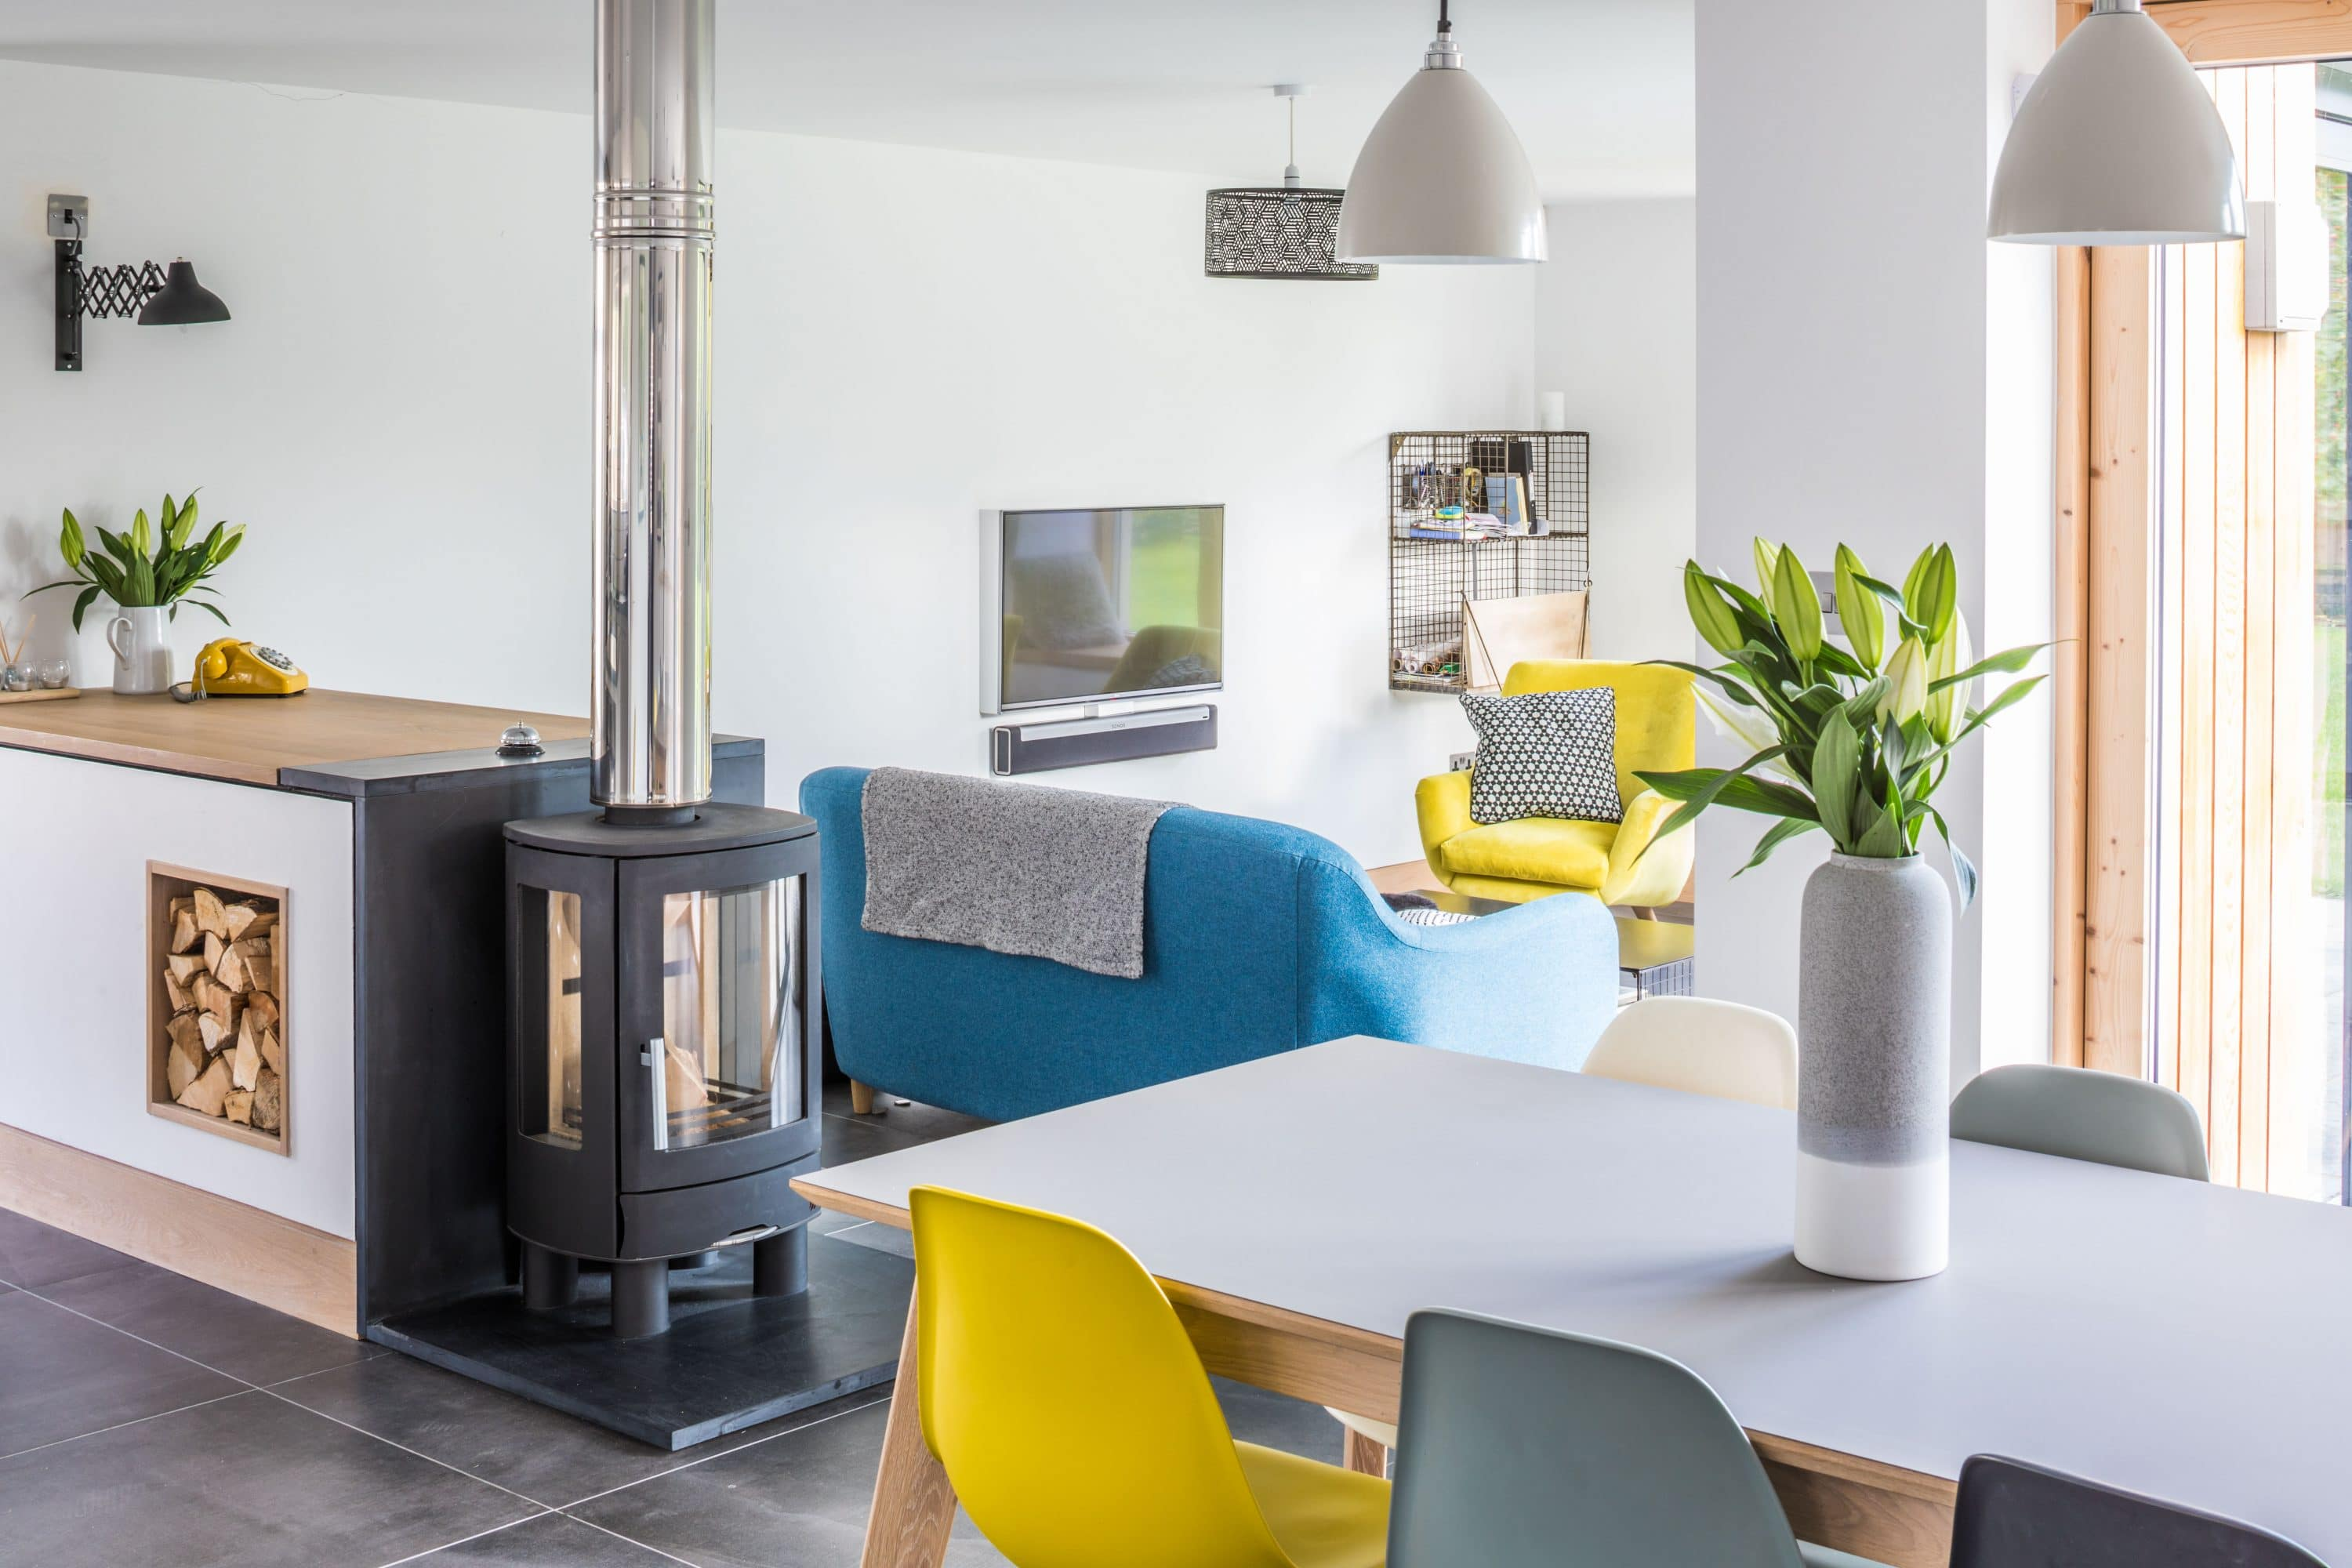 View of dining room with log burning stove in the foreground and retro furniture